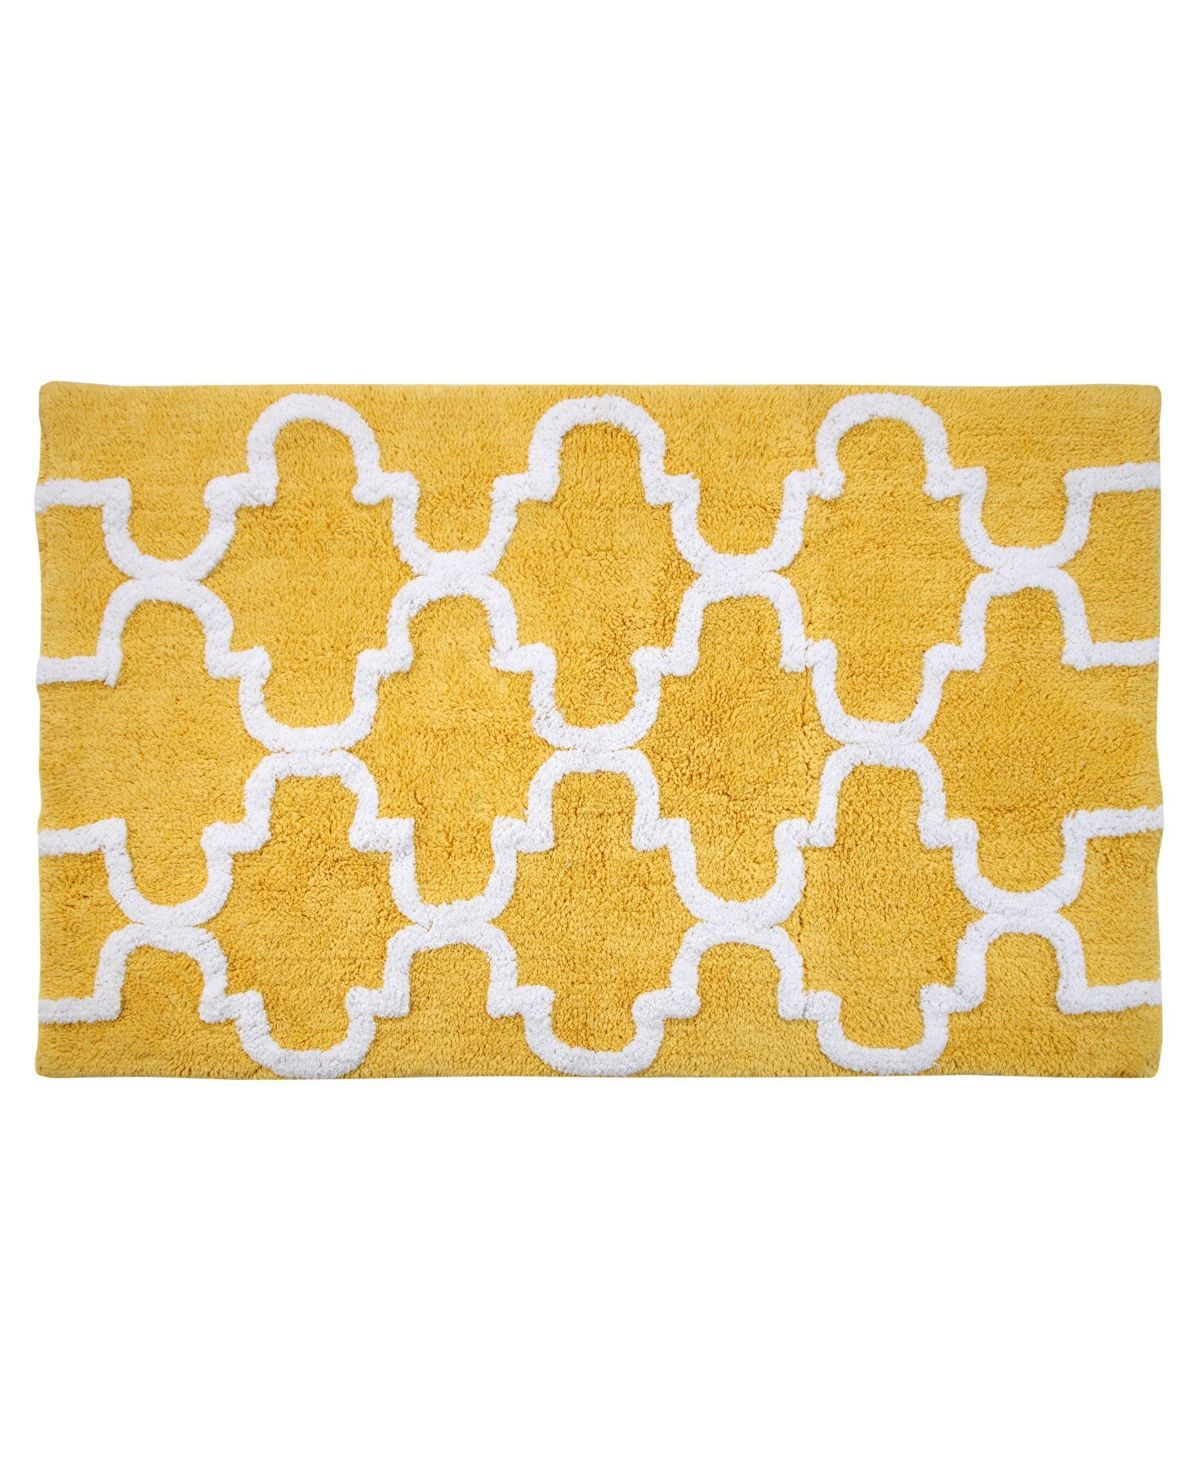 Saffron Fabs Geometric 50 X 30 Non Skid Cotton Bath Rug